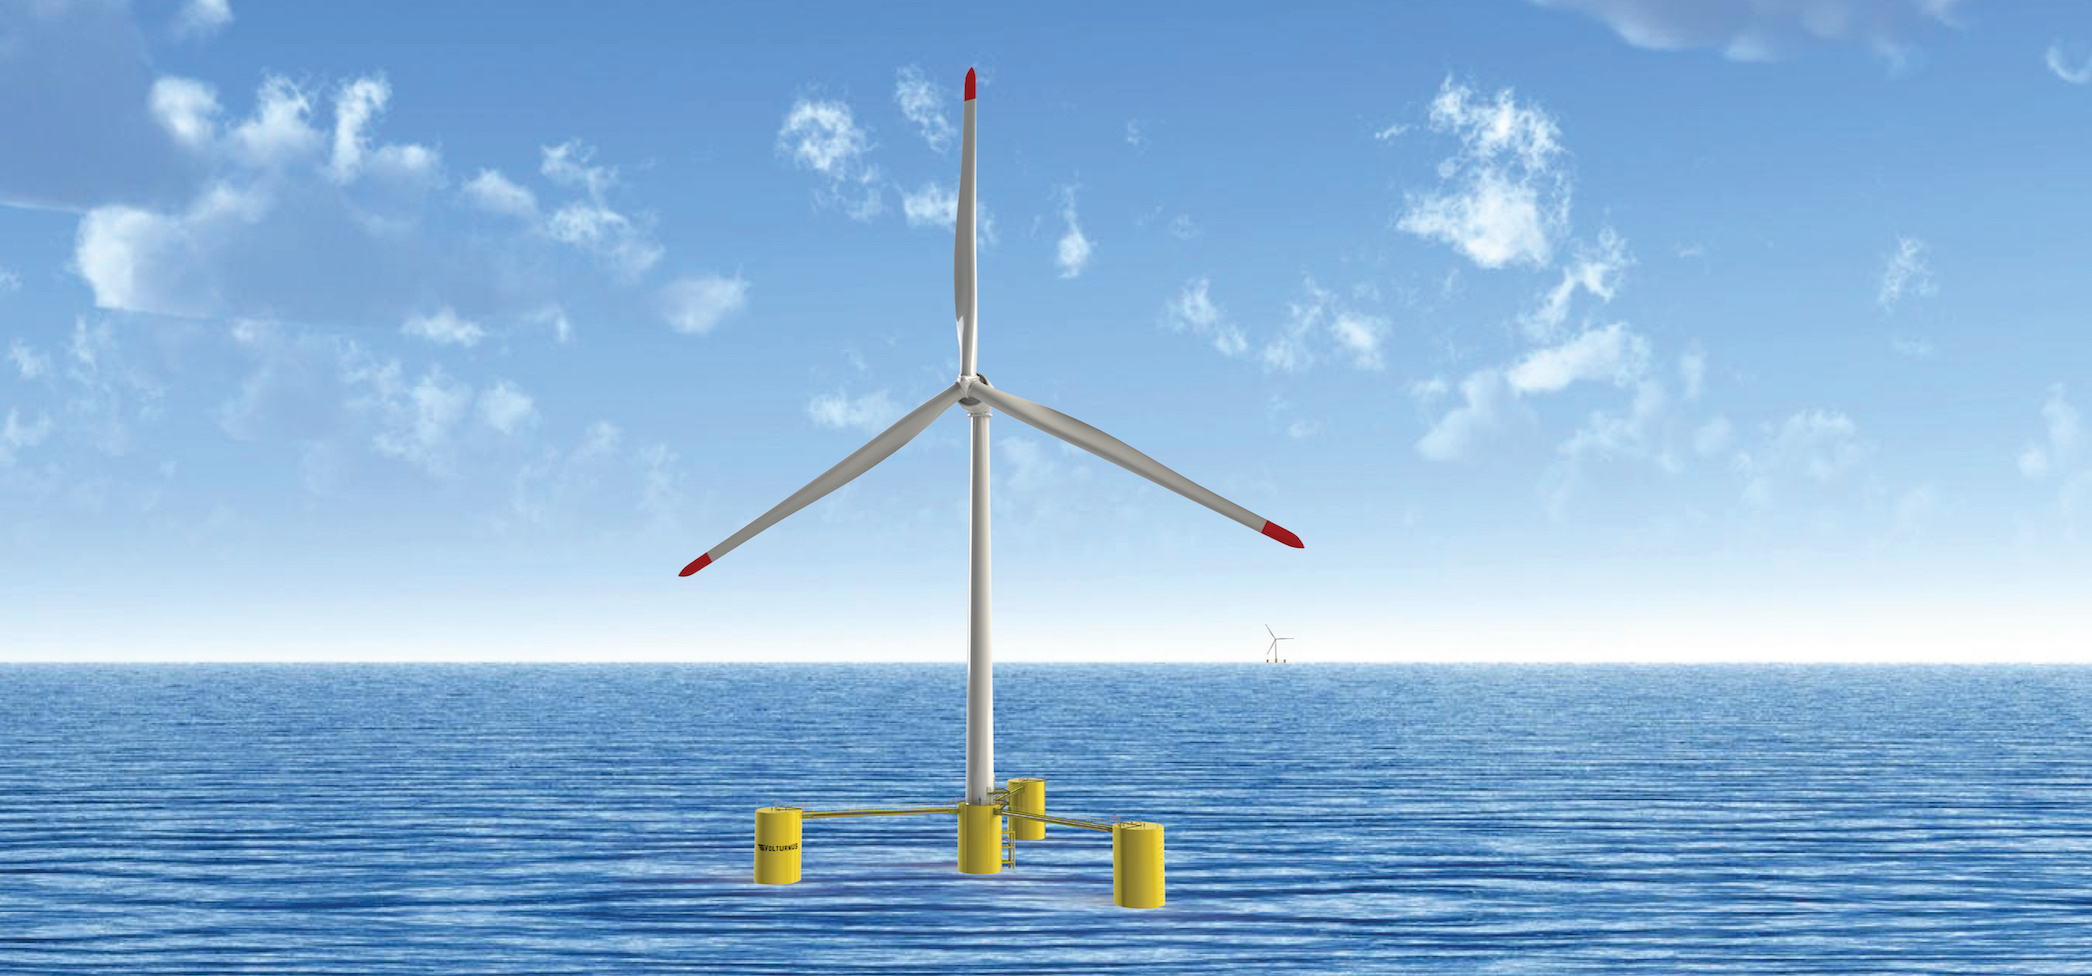 Rendering of a floating offshore wind turbine.